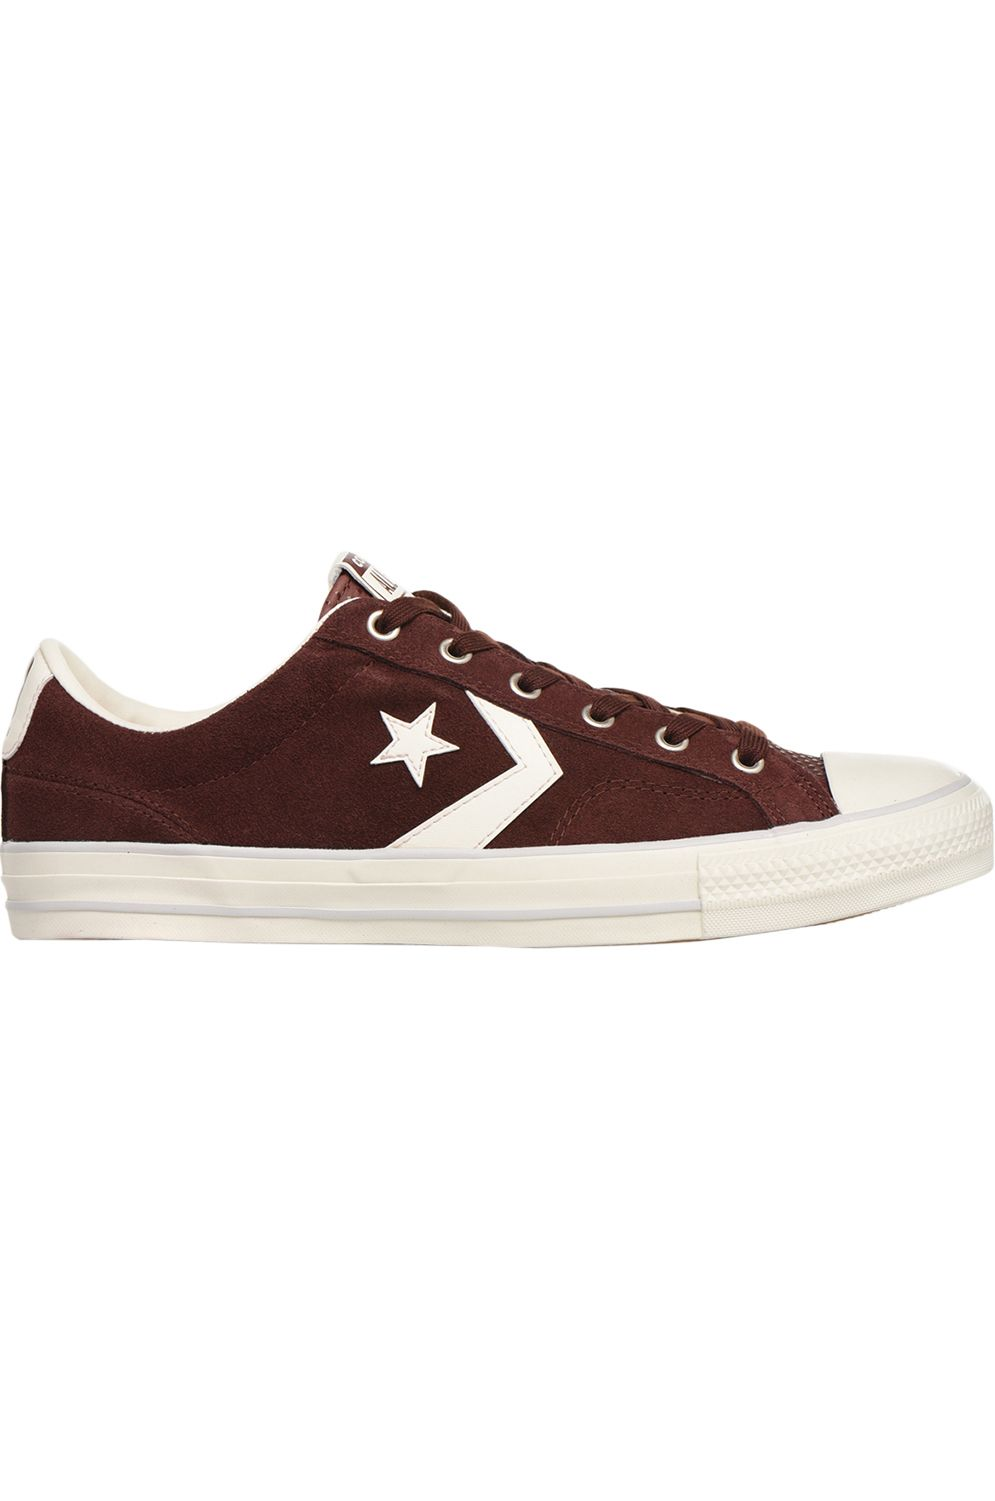 Tenis Converse STAR PLAYER OX Barkroot Brown/Egret/Mouse